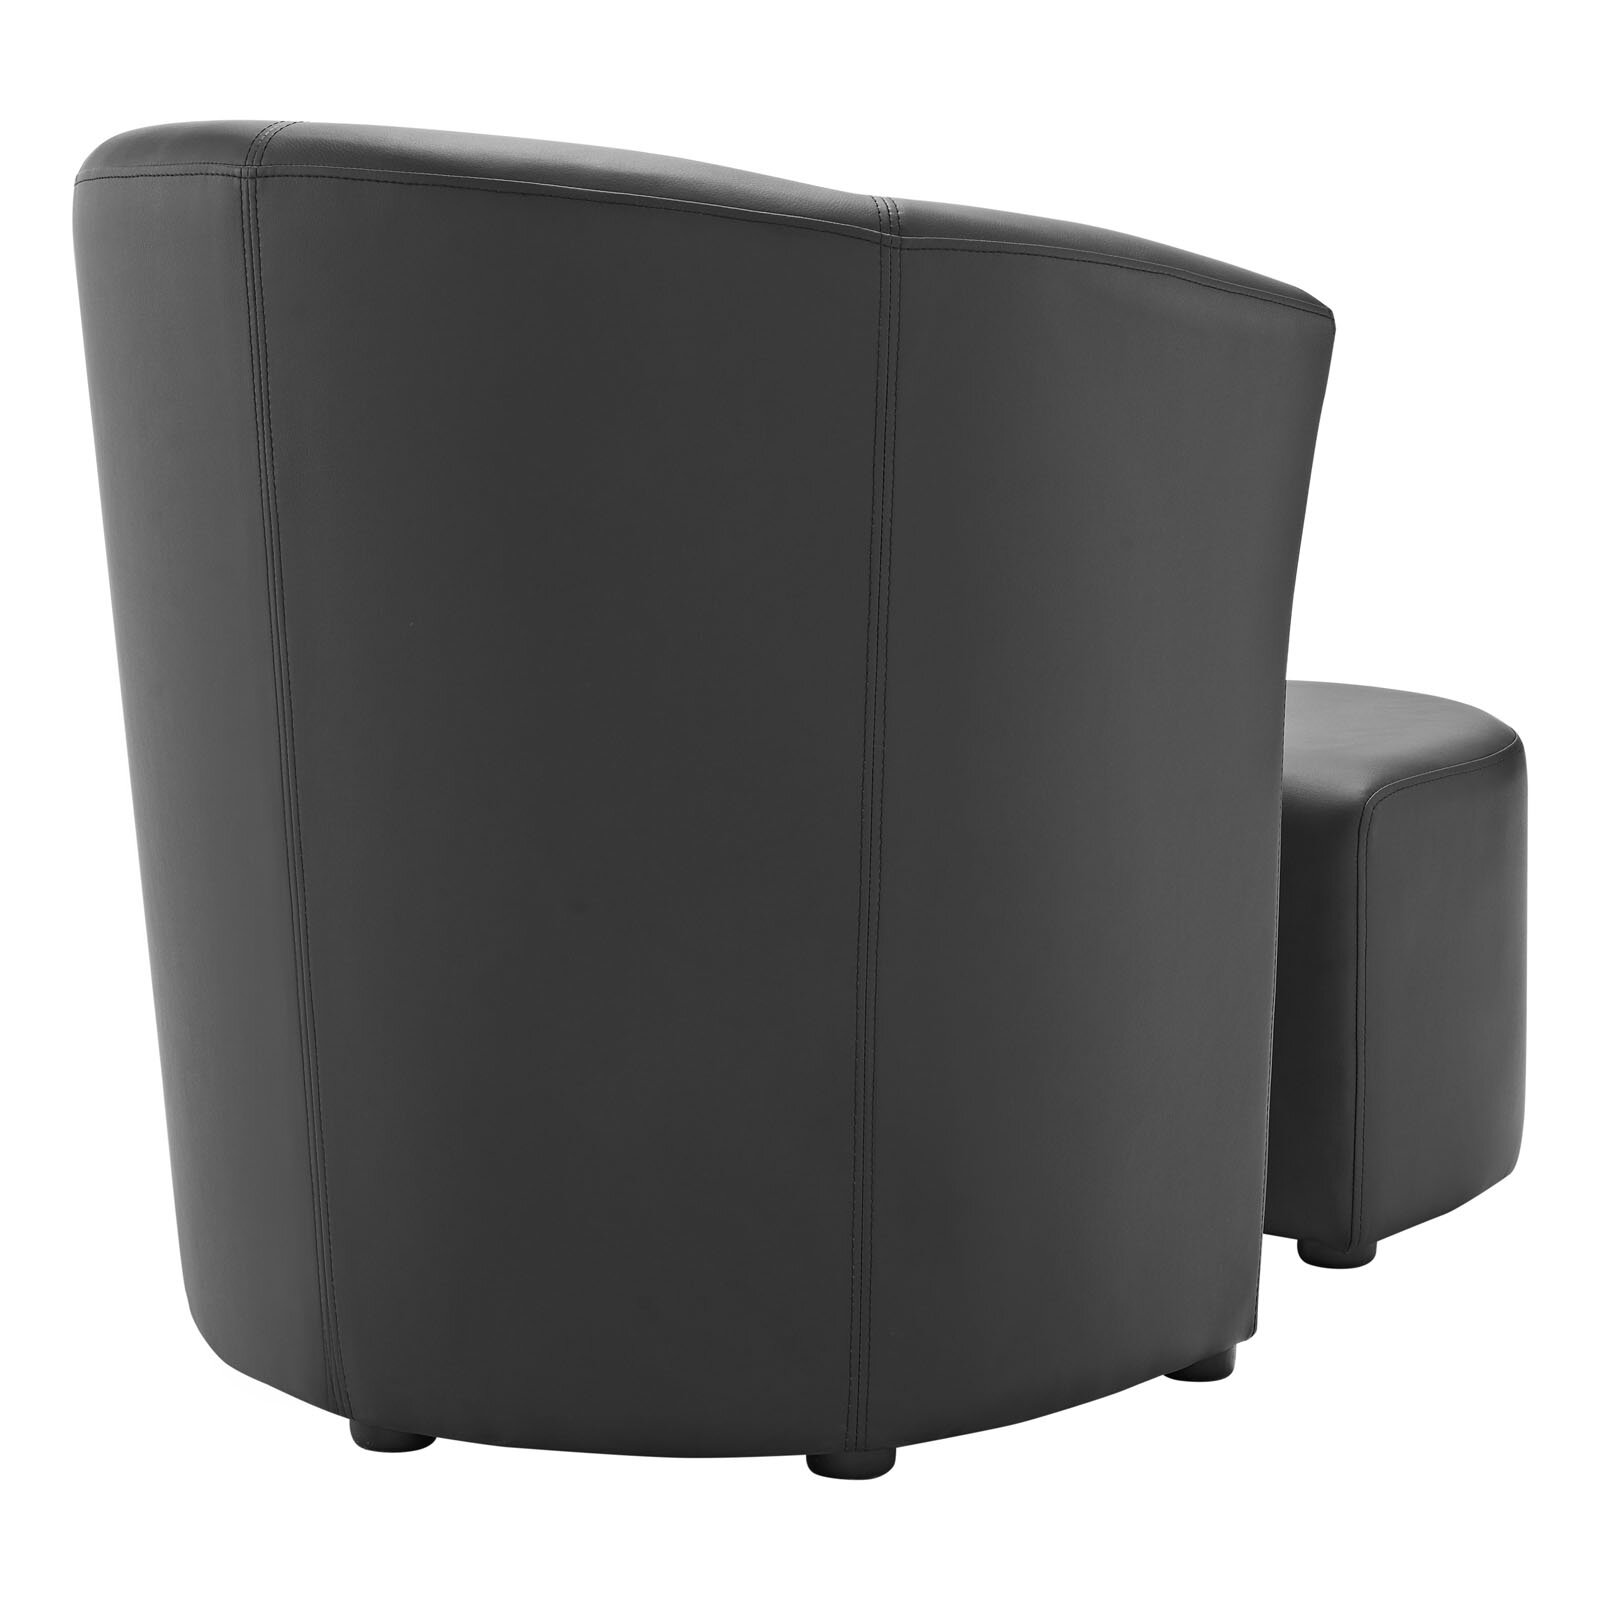 Modway Divulge Arm Chair and Ottoman Set & Reviews